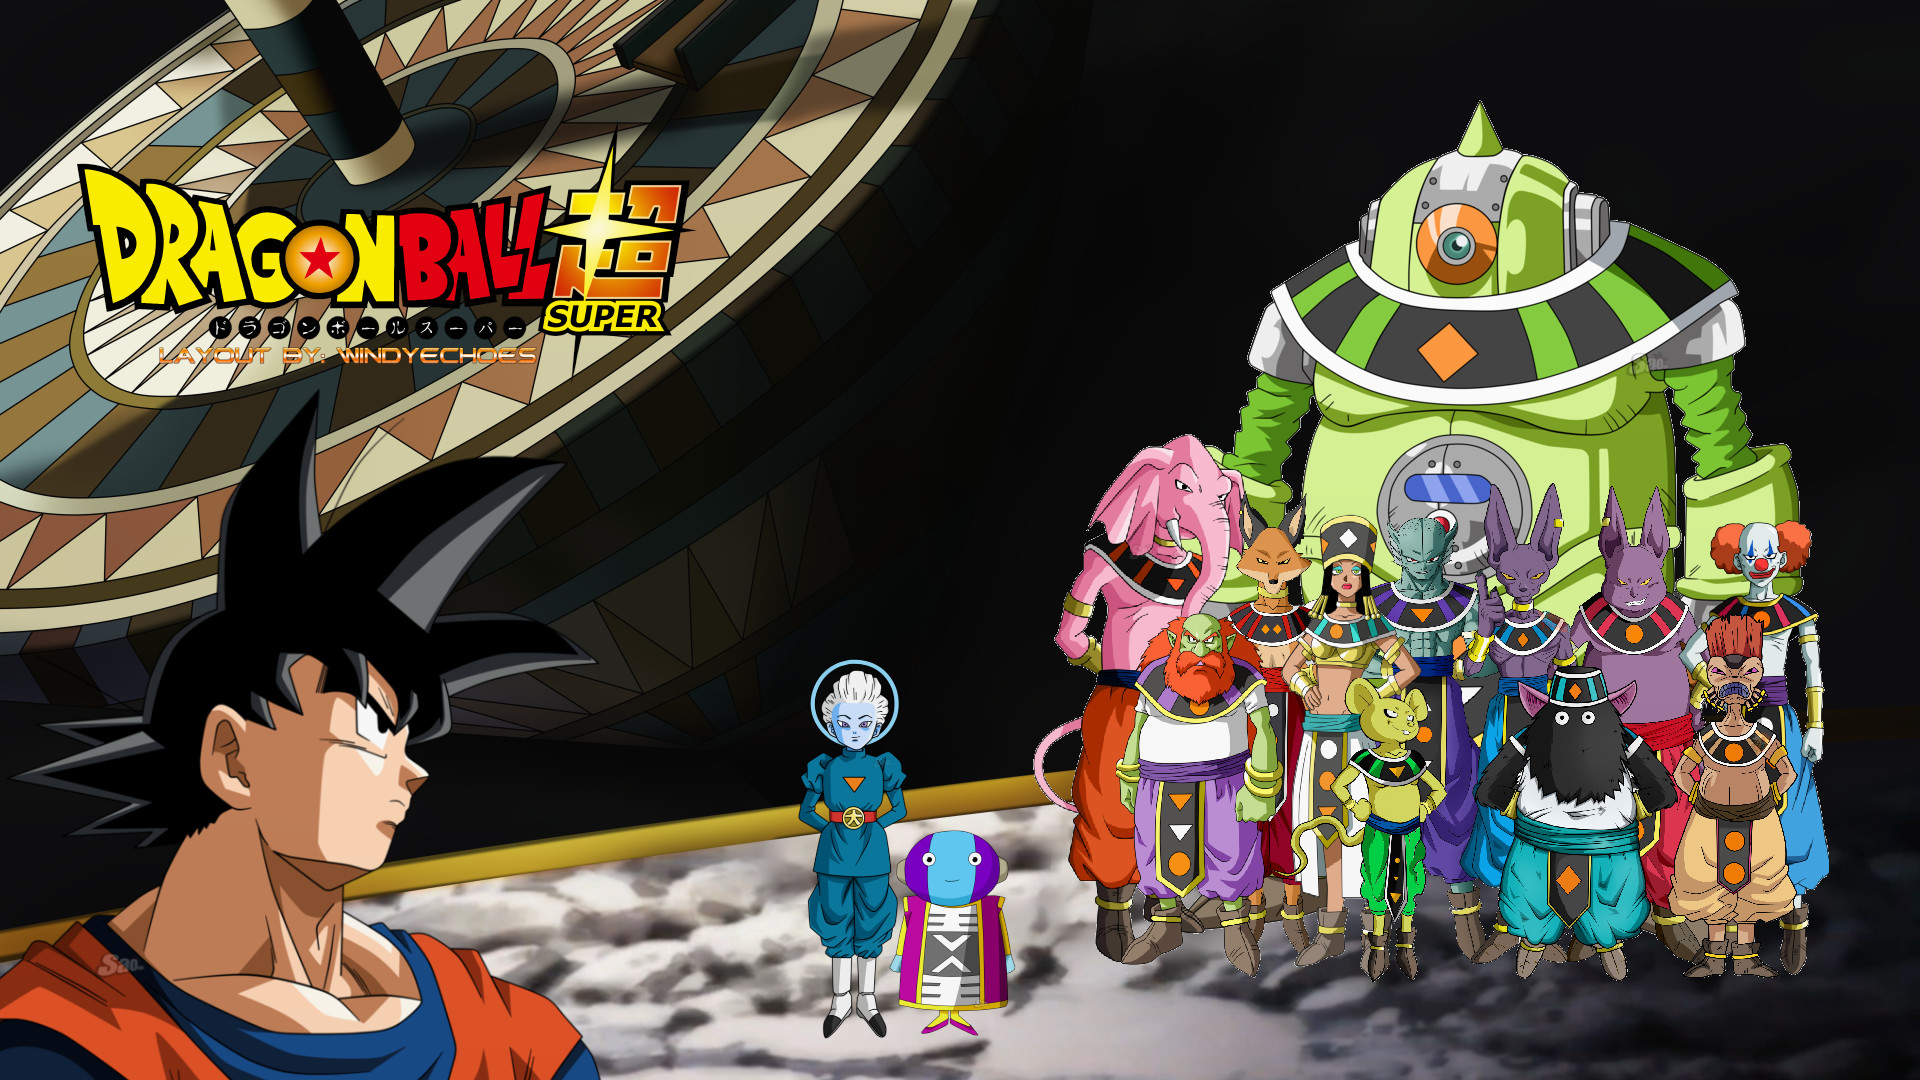 … Dragon Ball Super Wallpaper – Tournament of Power by WindyEchoes